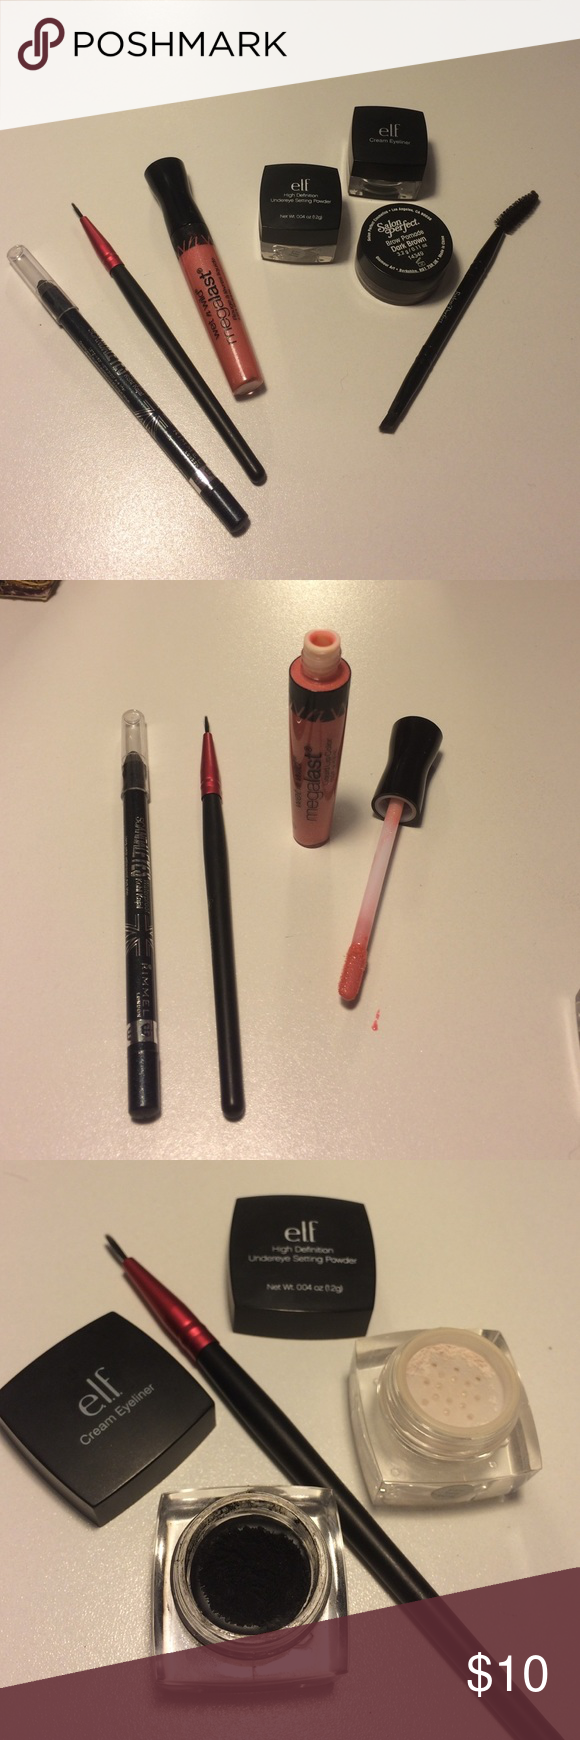 Makeup bundle!!!! INCLUDES - ✅elf black cream eyeliner. Used. ✅Eye liner brush. Not used. ✅Elf high definition under eye setting power. Not used. ✅Salon perfect brow pomade in dark brown. Used. With brow brush. Not used. ✅Wet n wild mega last liquid lip color in pink perfection. Not used. ✅Rimmel London scandal eyes water proof eyeliner in sparkling black. Makeup